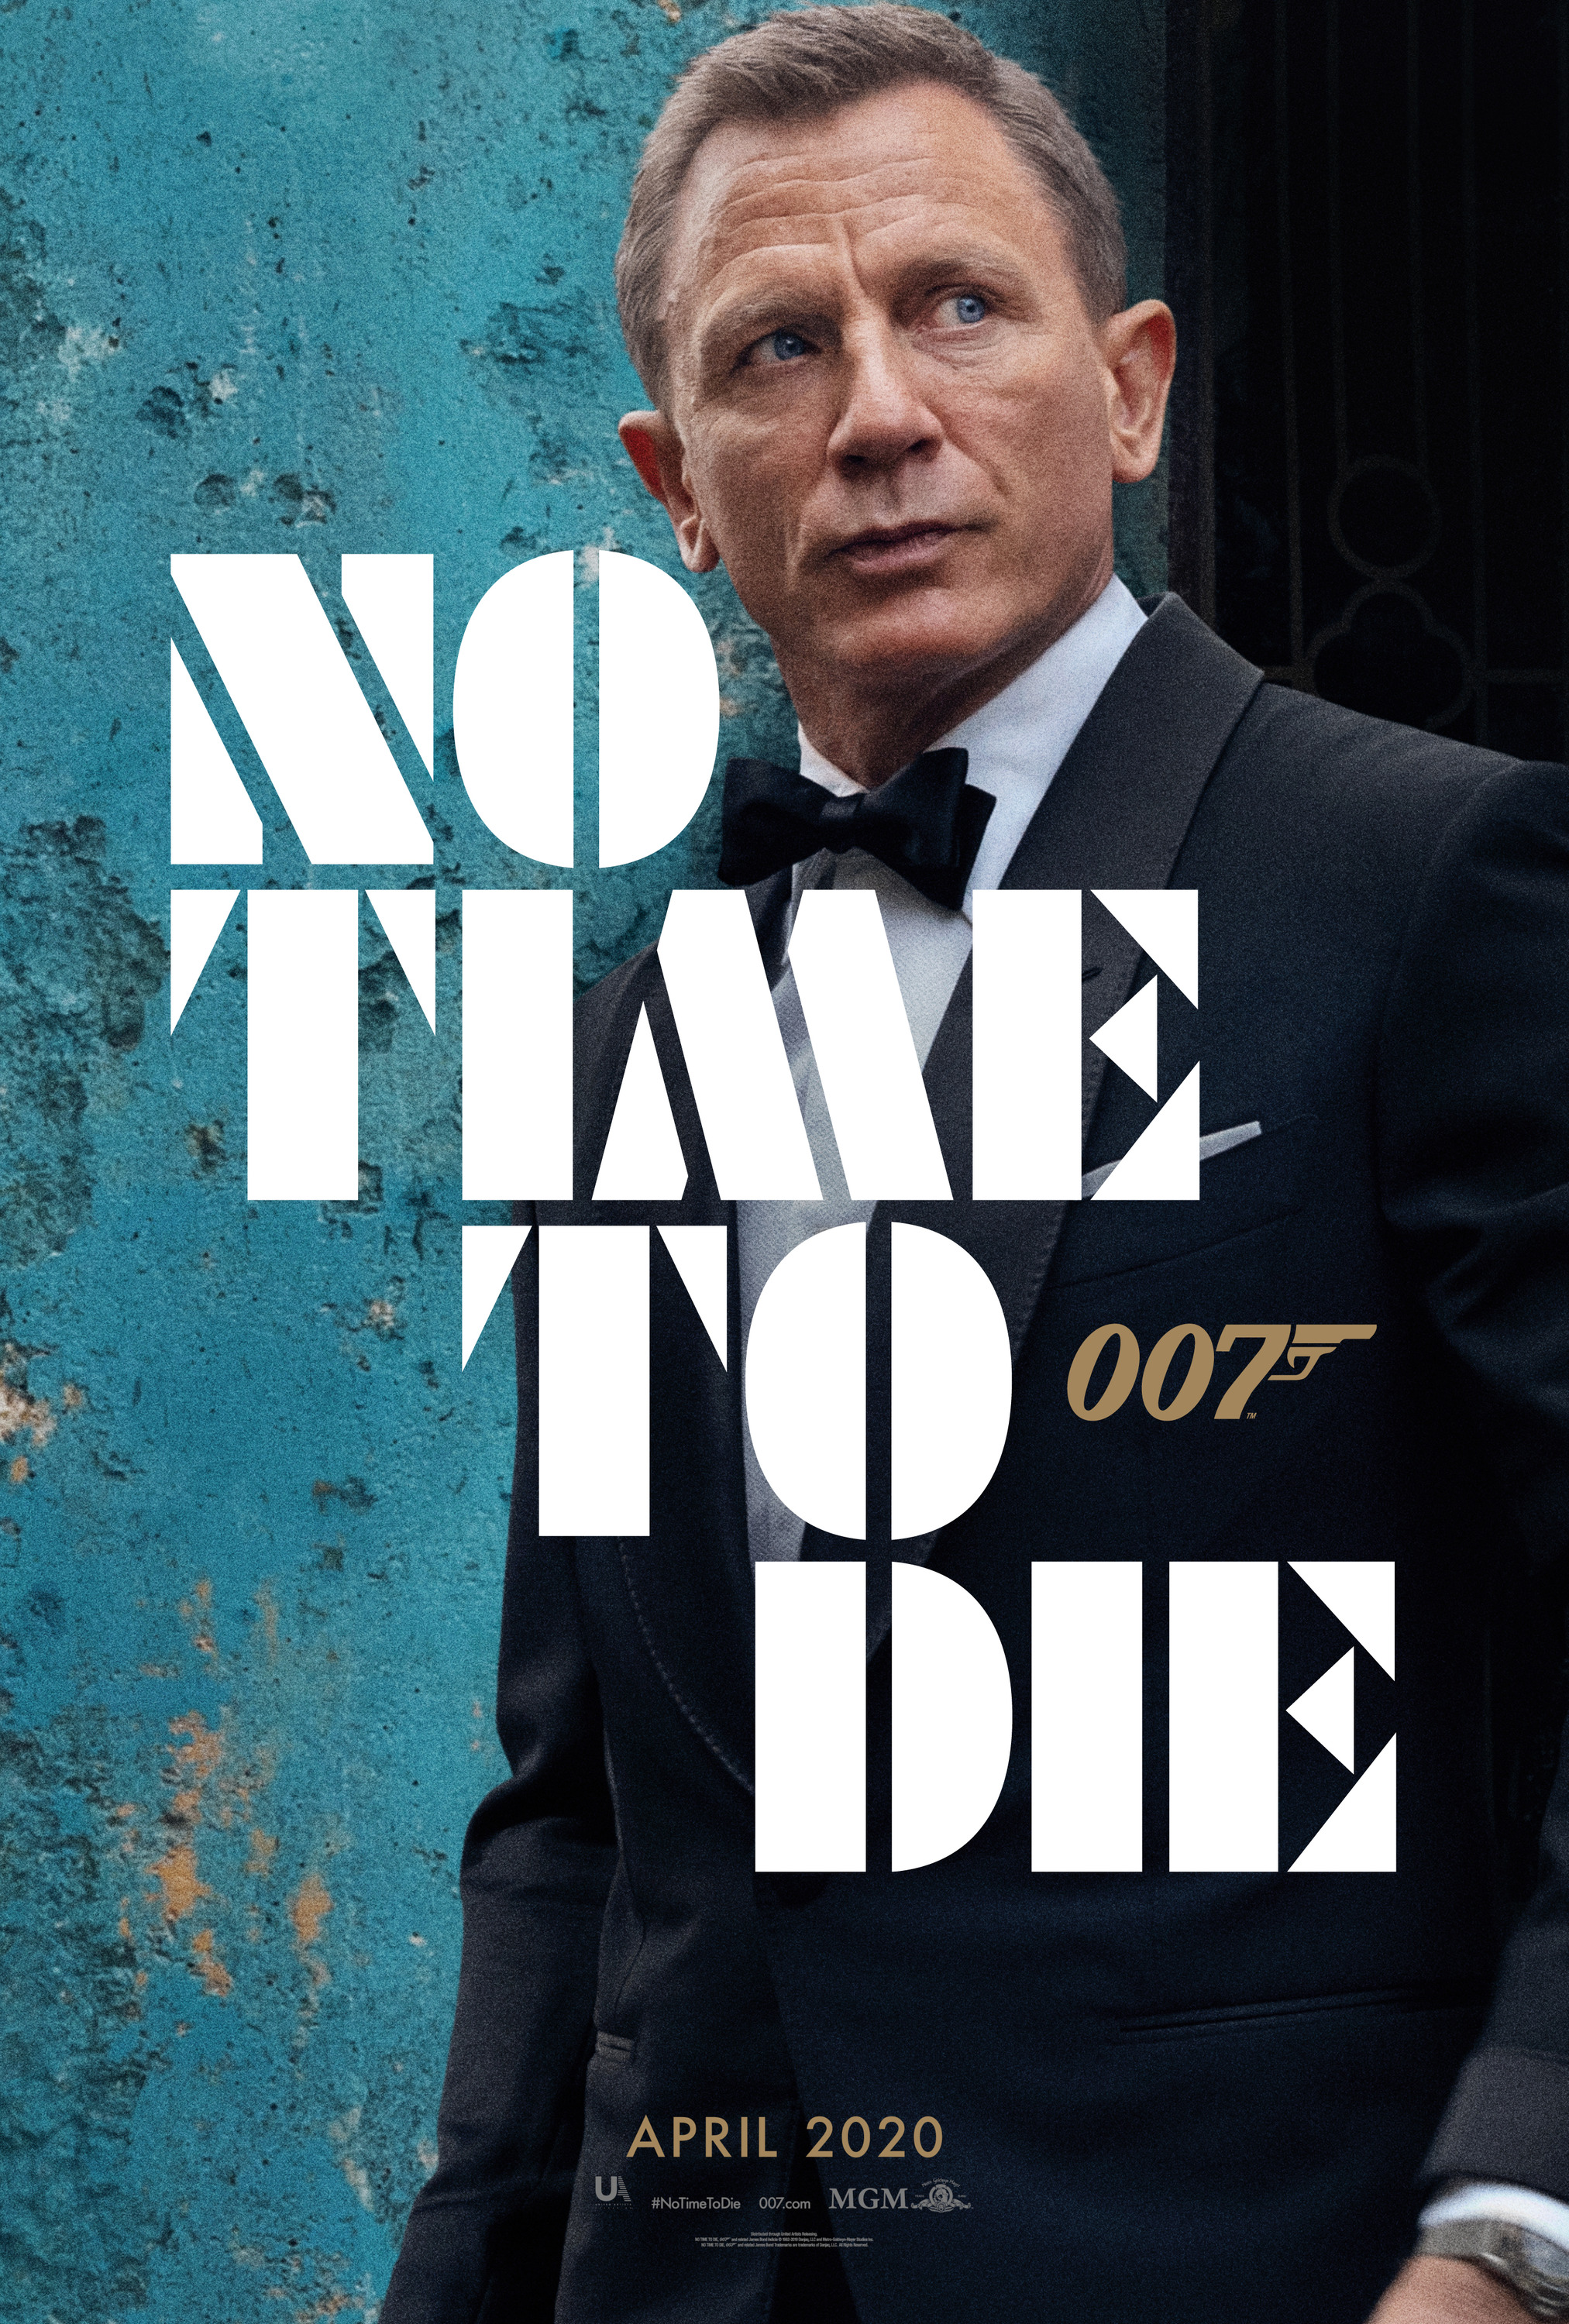 szmk_james_bond_nincs_ido_meghalni_no_time_to_die_007_daniel_craig_14.jpg